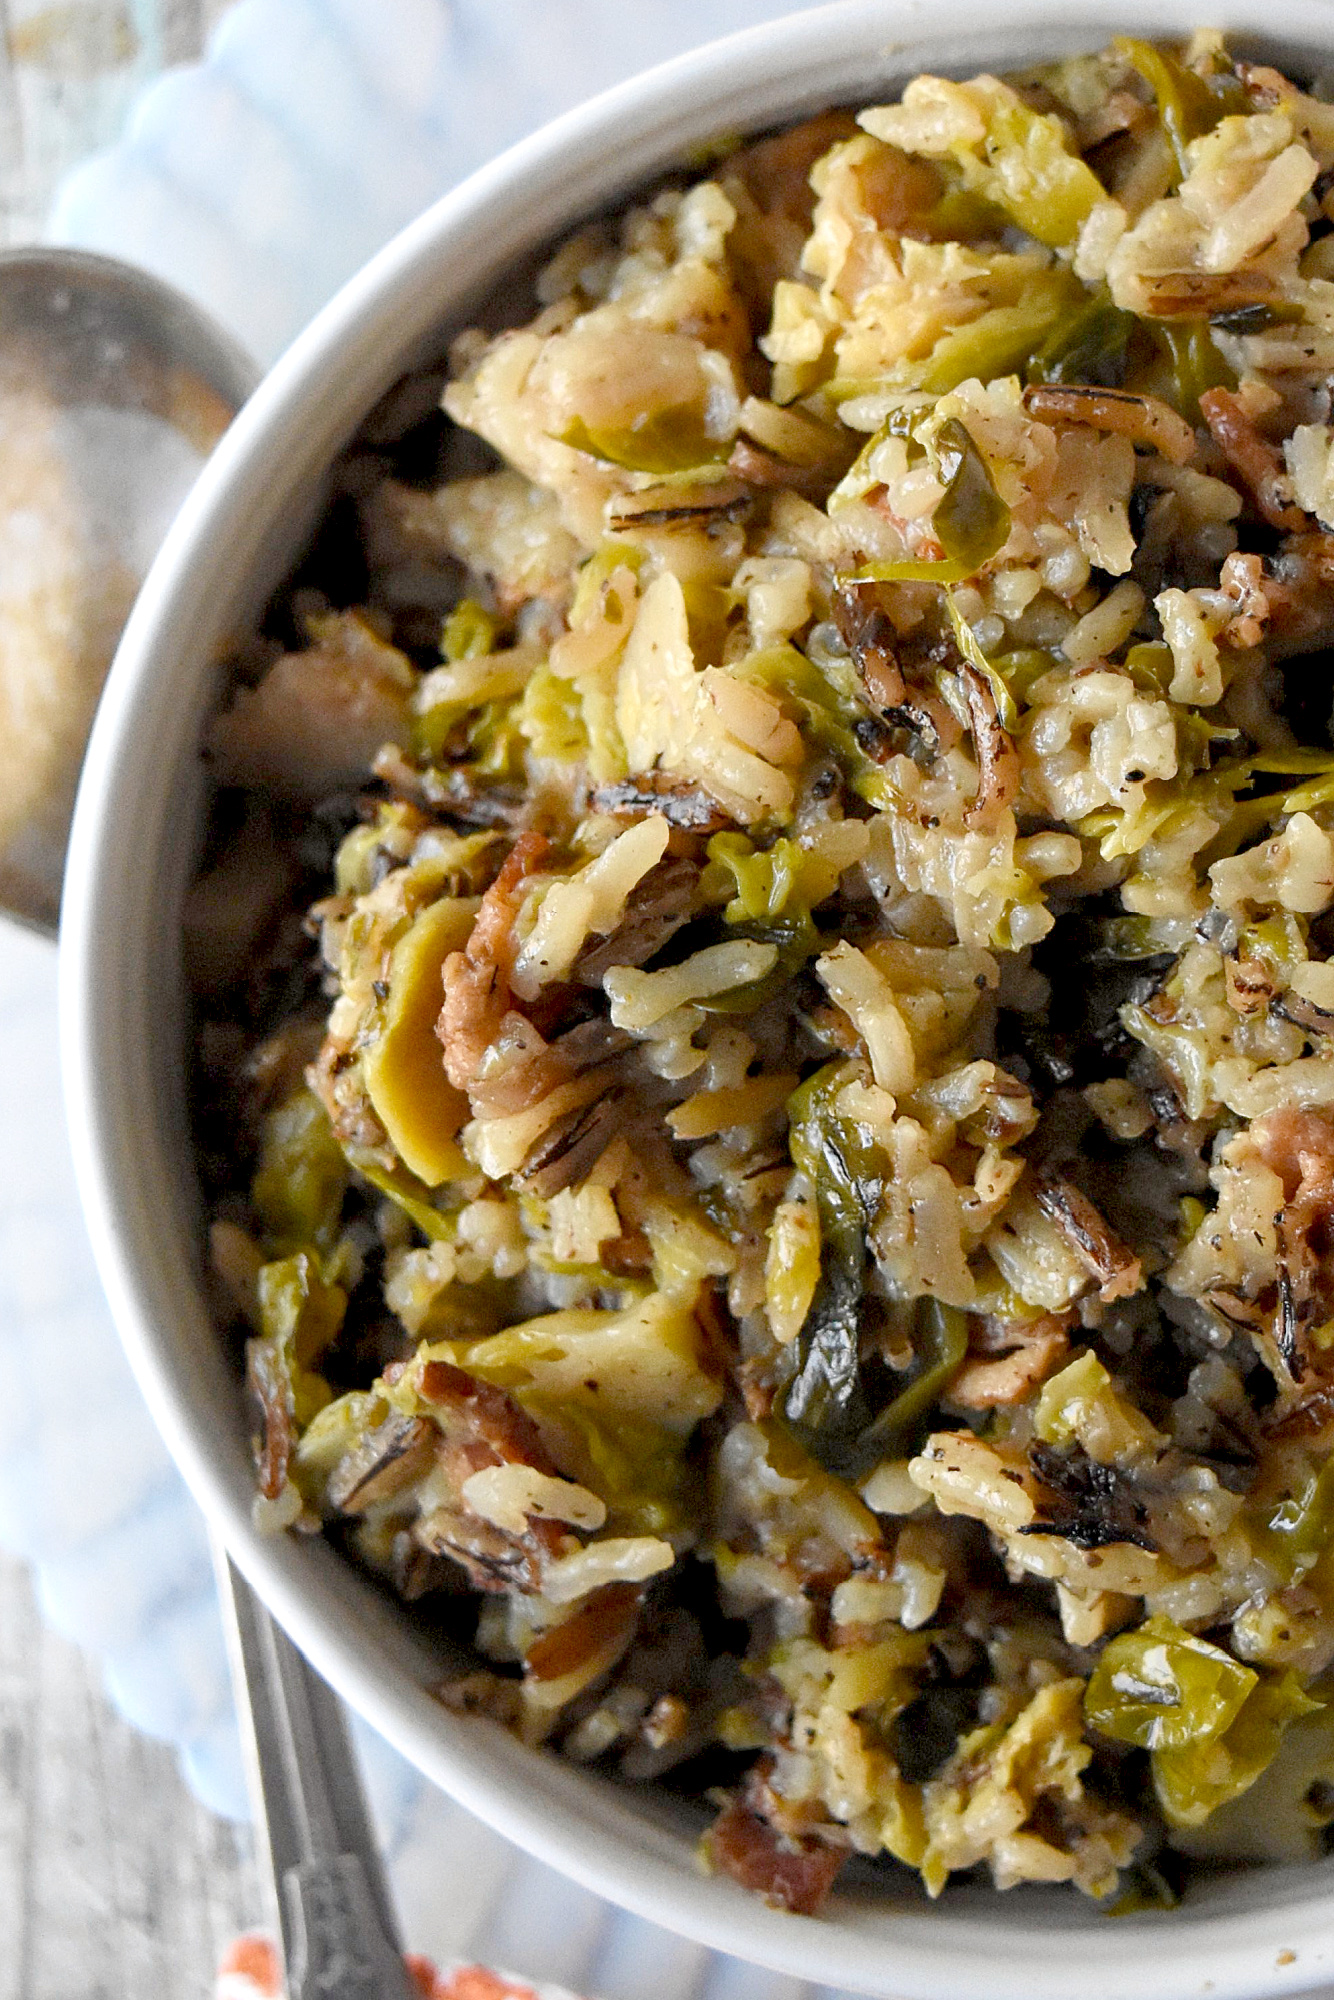 Wild Rice and Sprouts Pilaf is the perfect side dish to any holiday meal.  Any meal for that matter.  With long grain and wild rice simmered with Brussels sprouts and thick cut bacon, it's a side dish you're family will love! #HolidaySideDishes